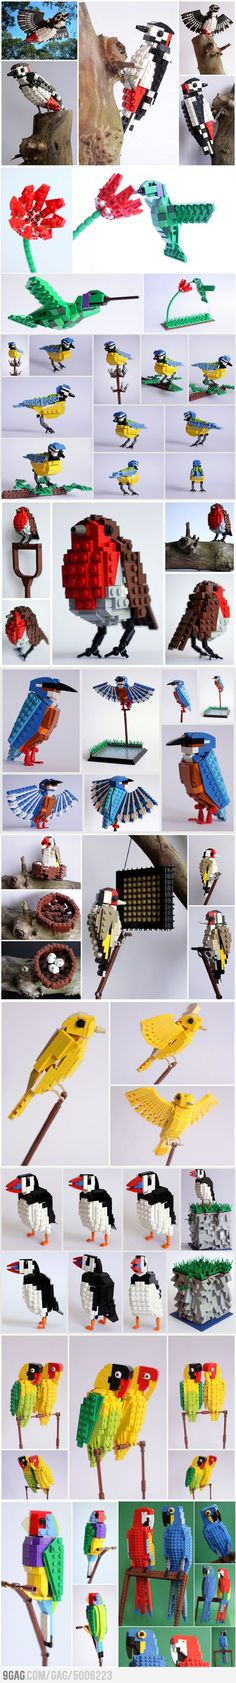 LEGO Birds Awesome LEGO Birds - finally something that makes me respect Legos again.Awesome LEGO Birds - finally something that makes me respect Legos again. Lego Duplo, Lego Design, Van Lego, Lego Challenge, Lego Club, Lego Craft, Lego For Kids, Lego Storage, Lego Worlds